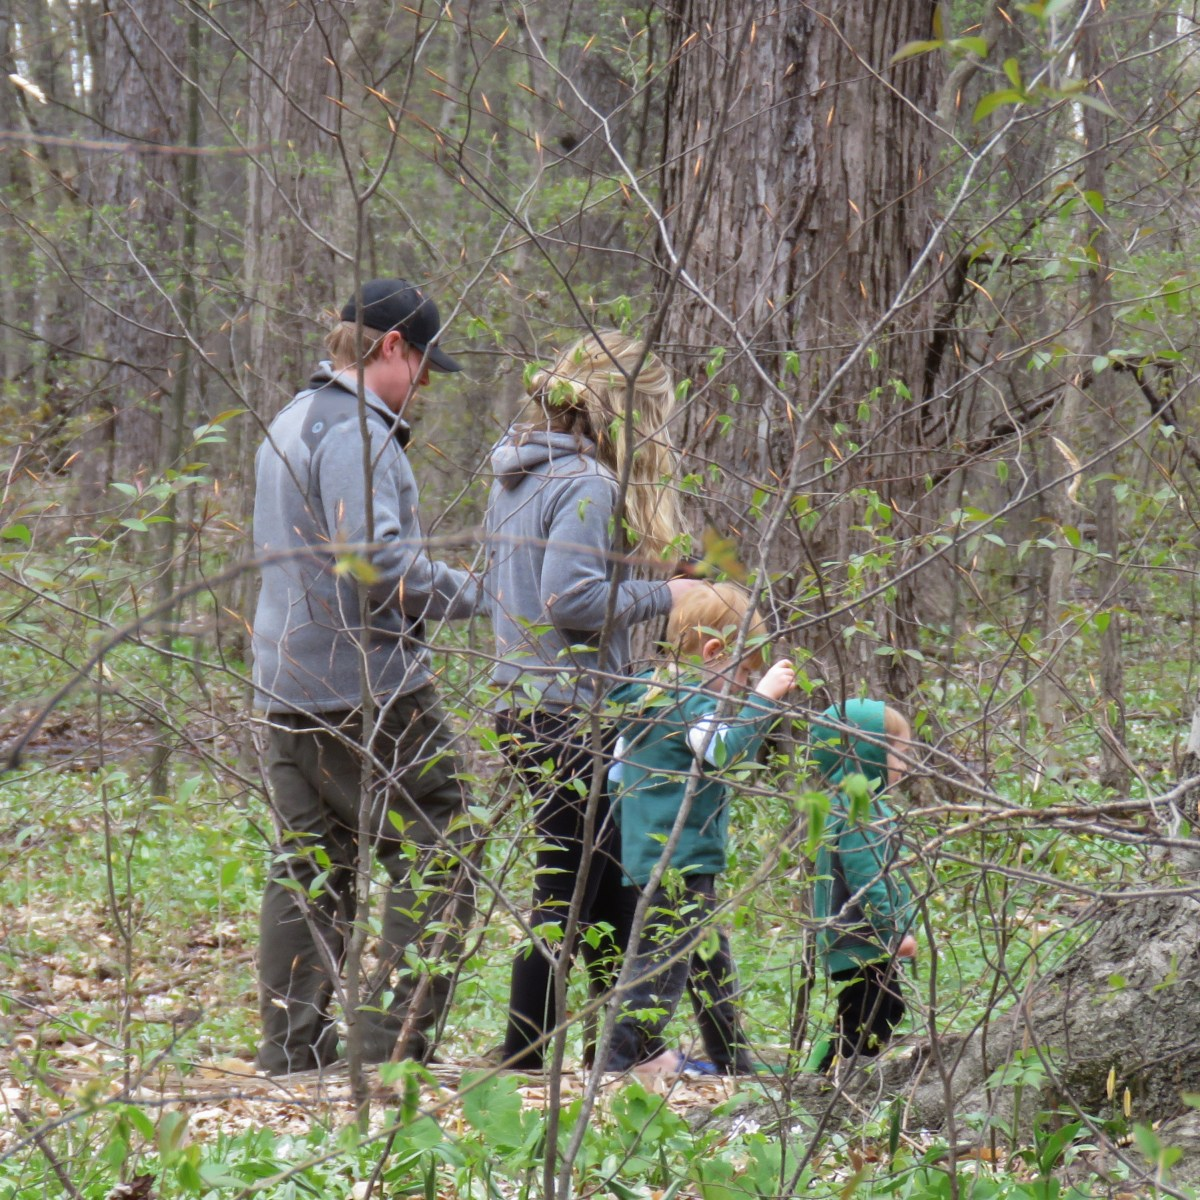 A man, woman, and two small children walk through a wooded area on an overcast day